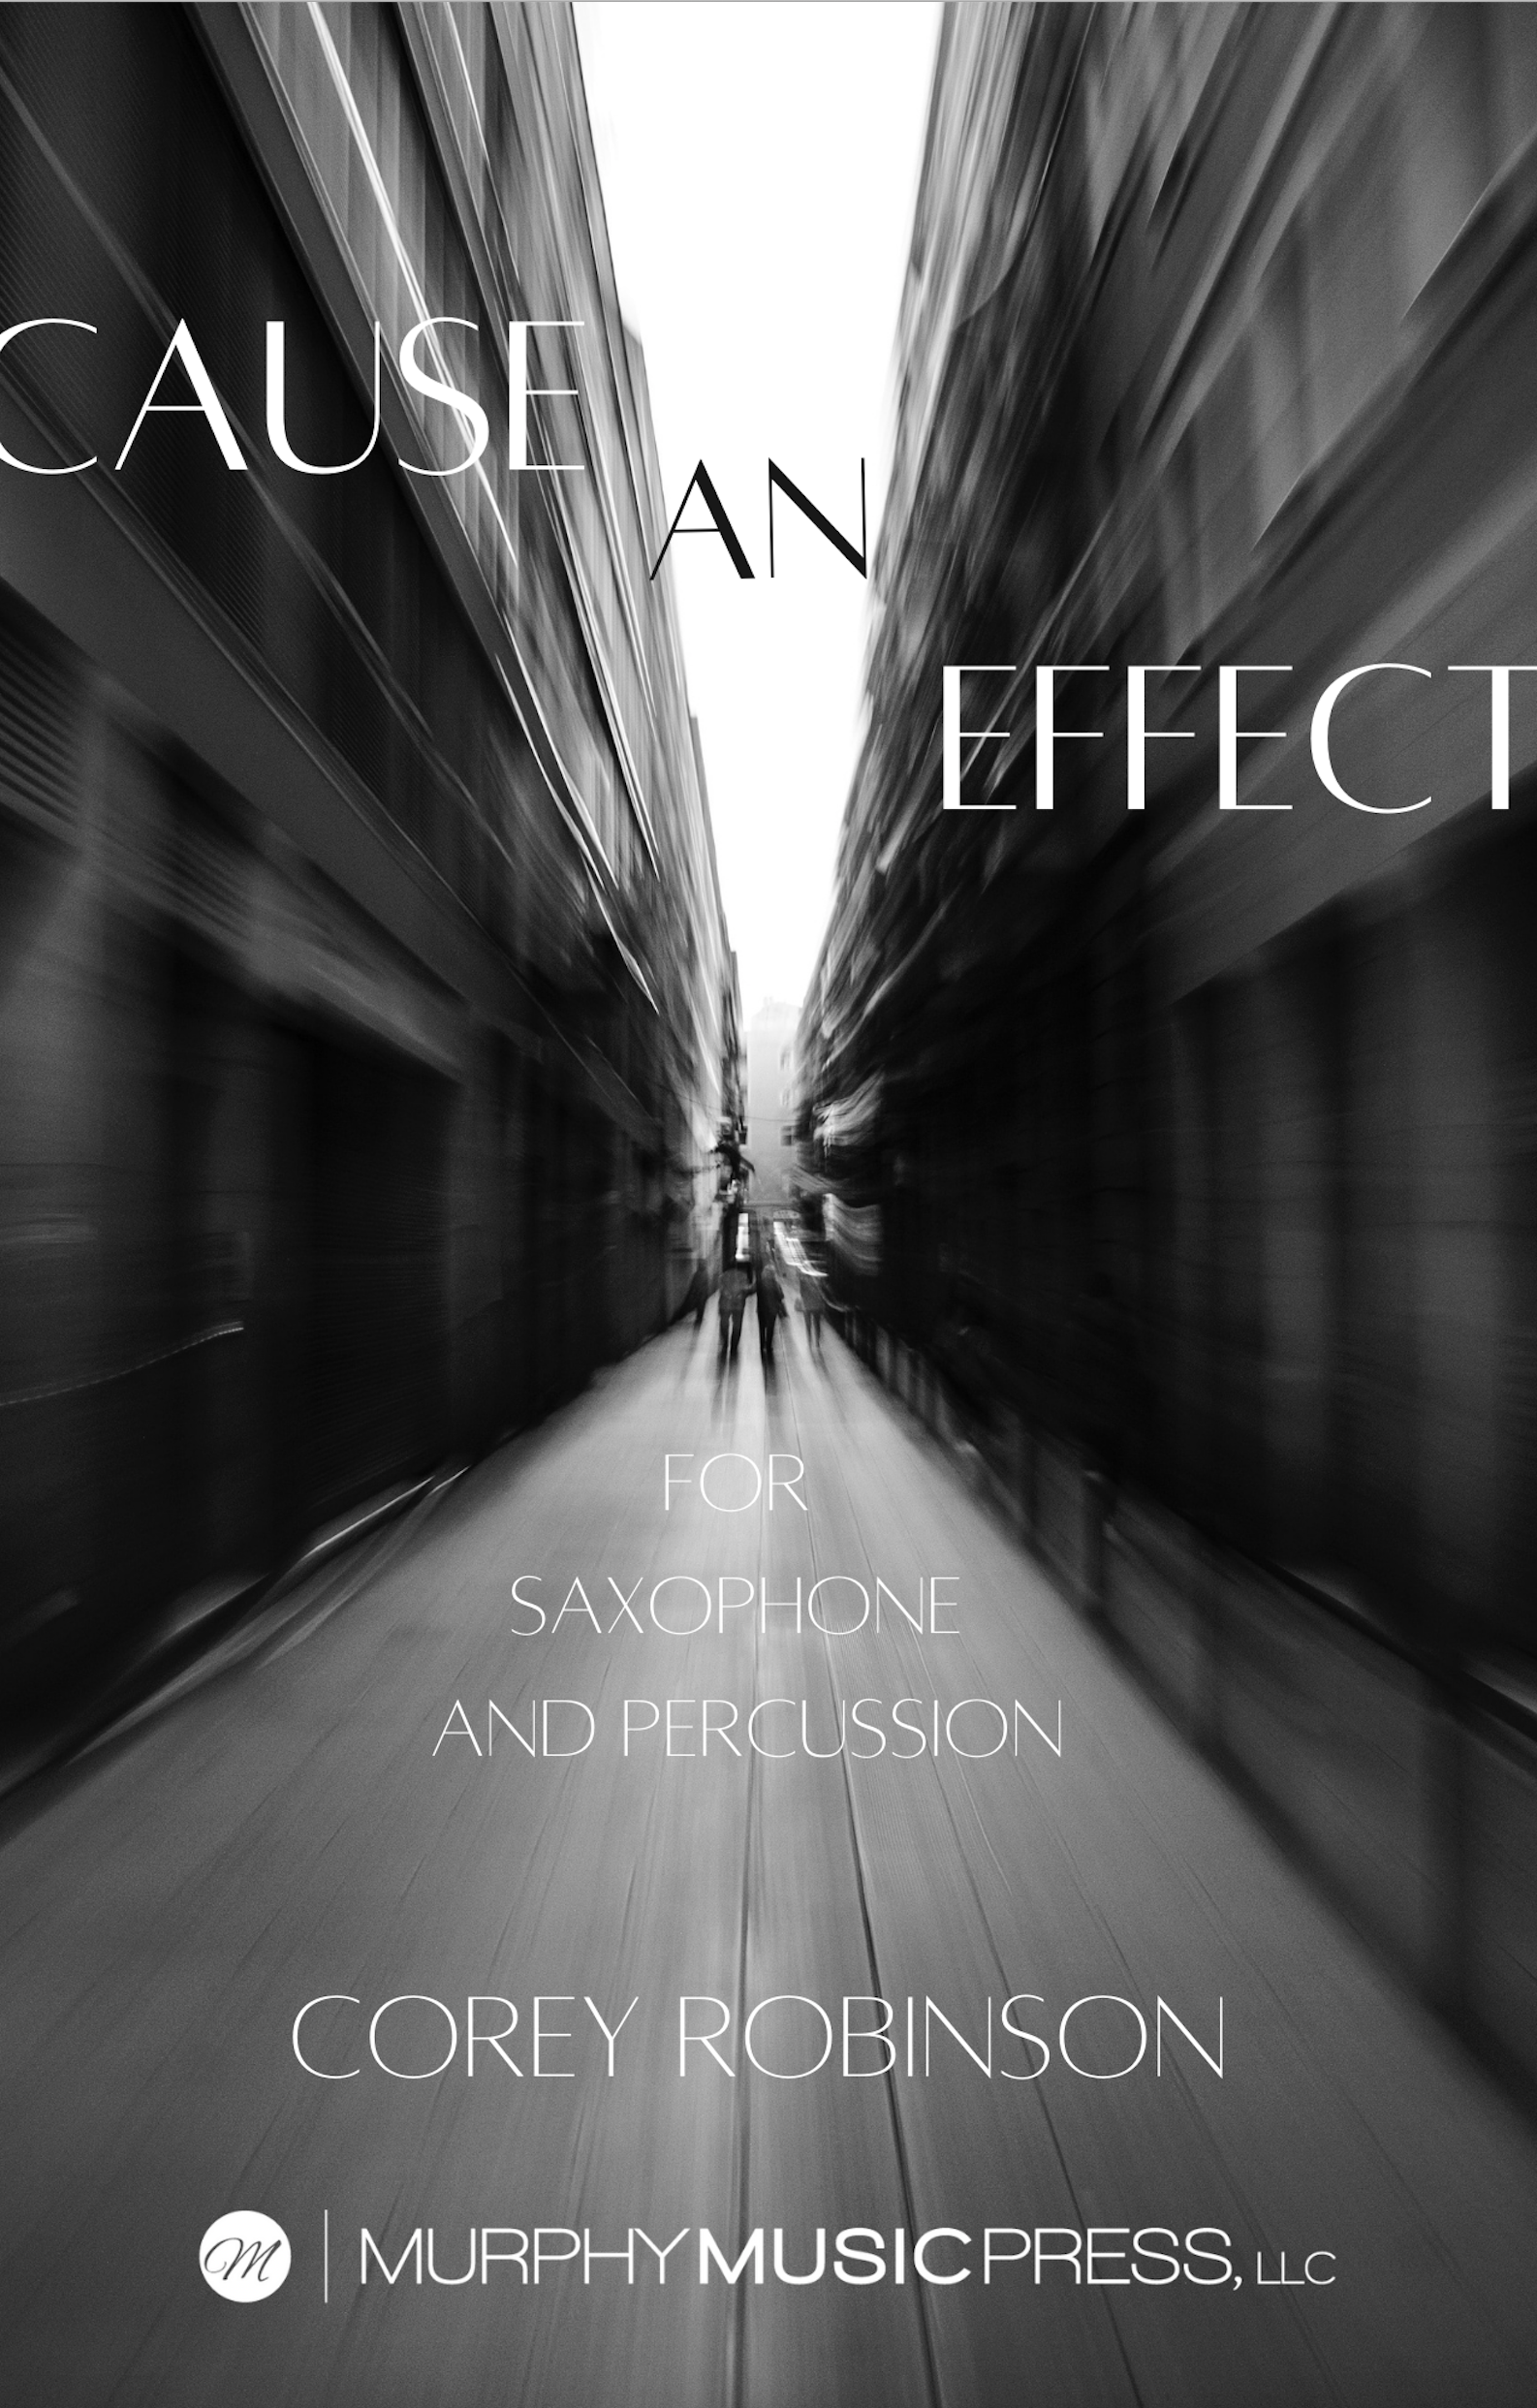 Cause An Effect by Corey Robinson